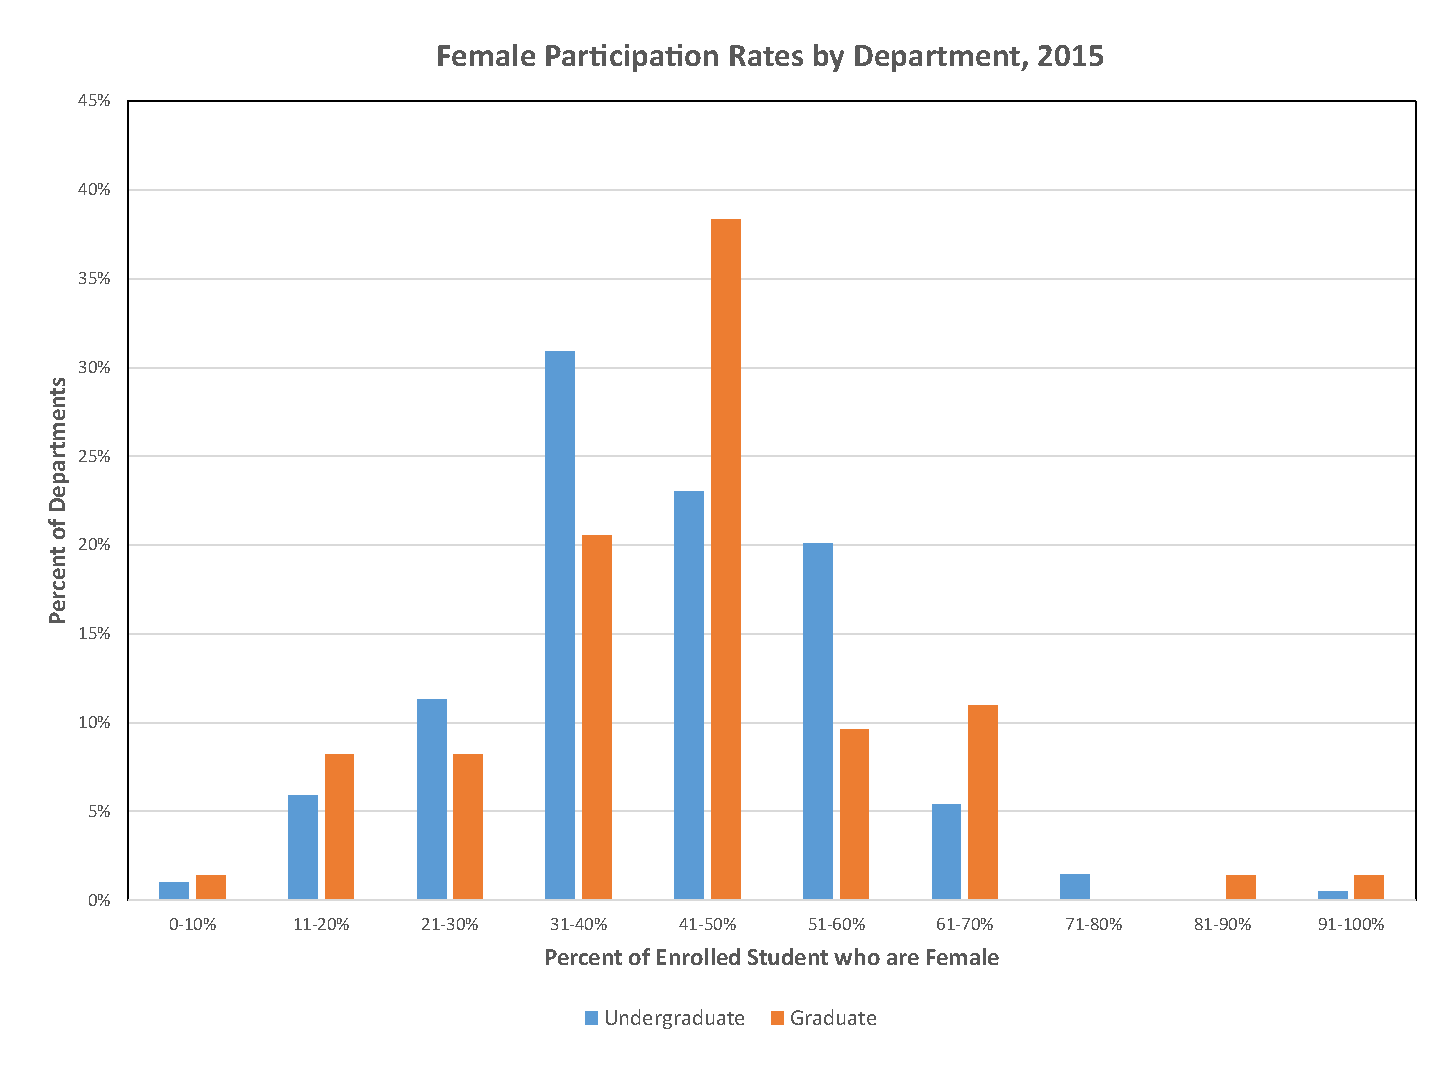 Female Participation by Departments, 2015